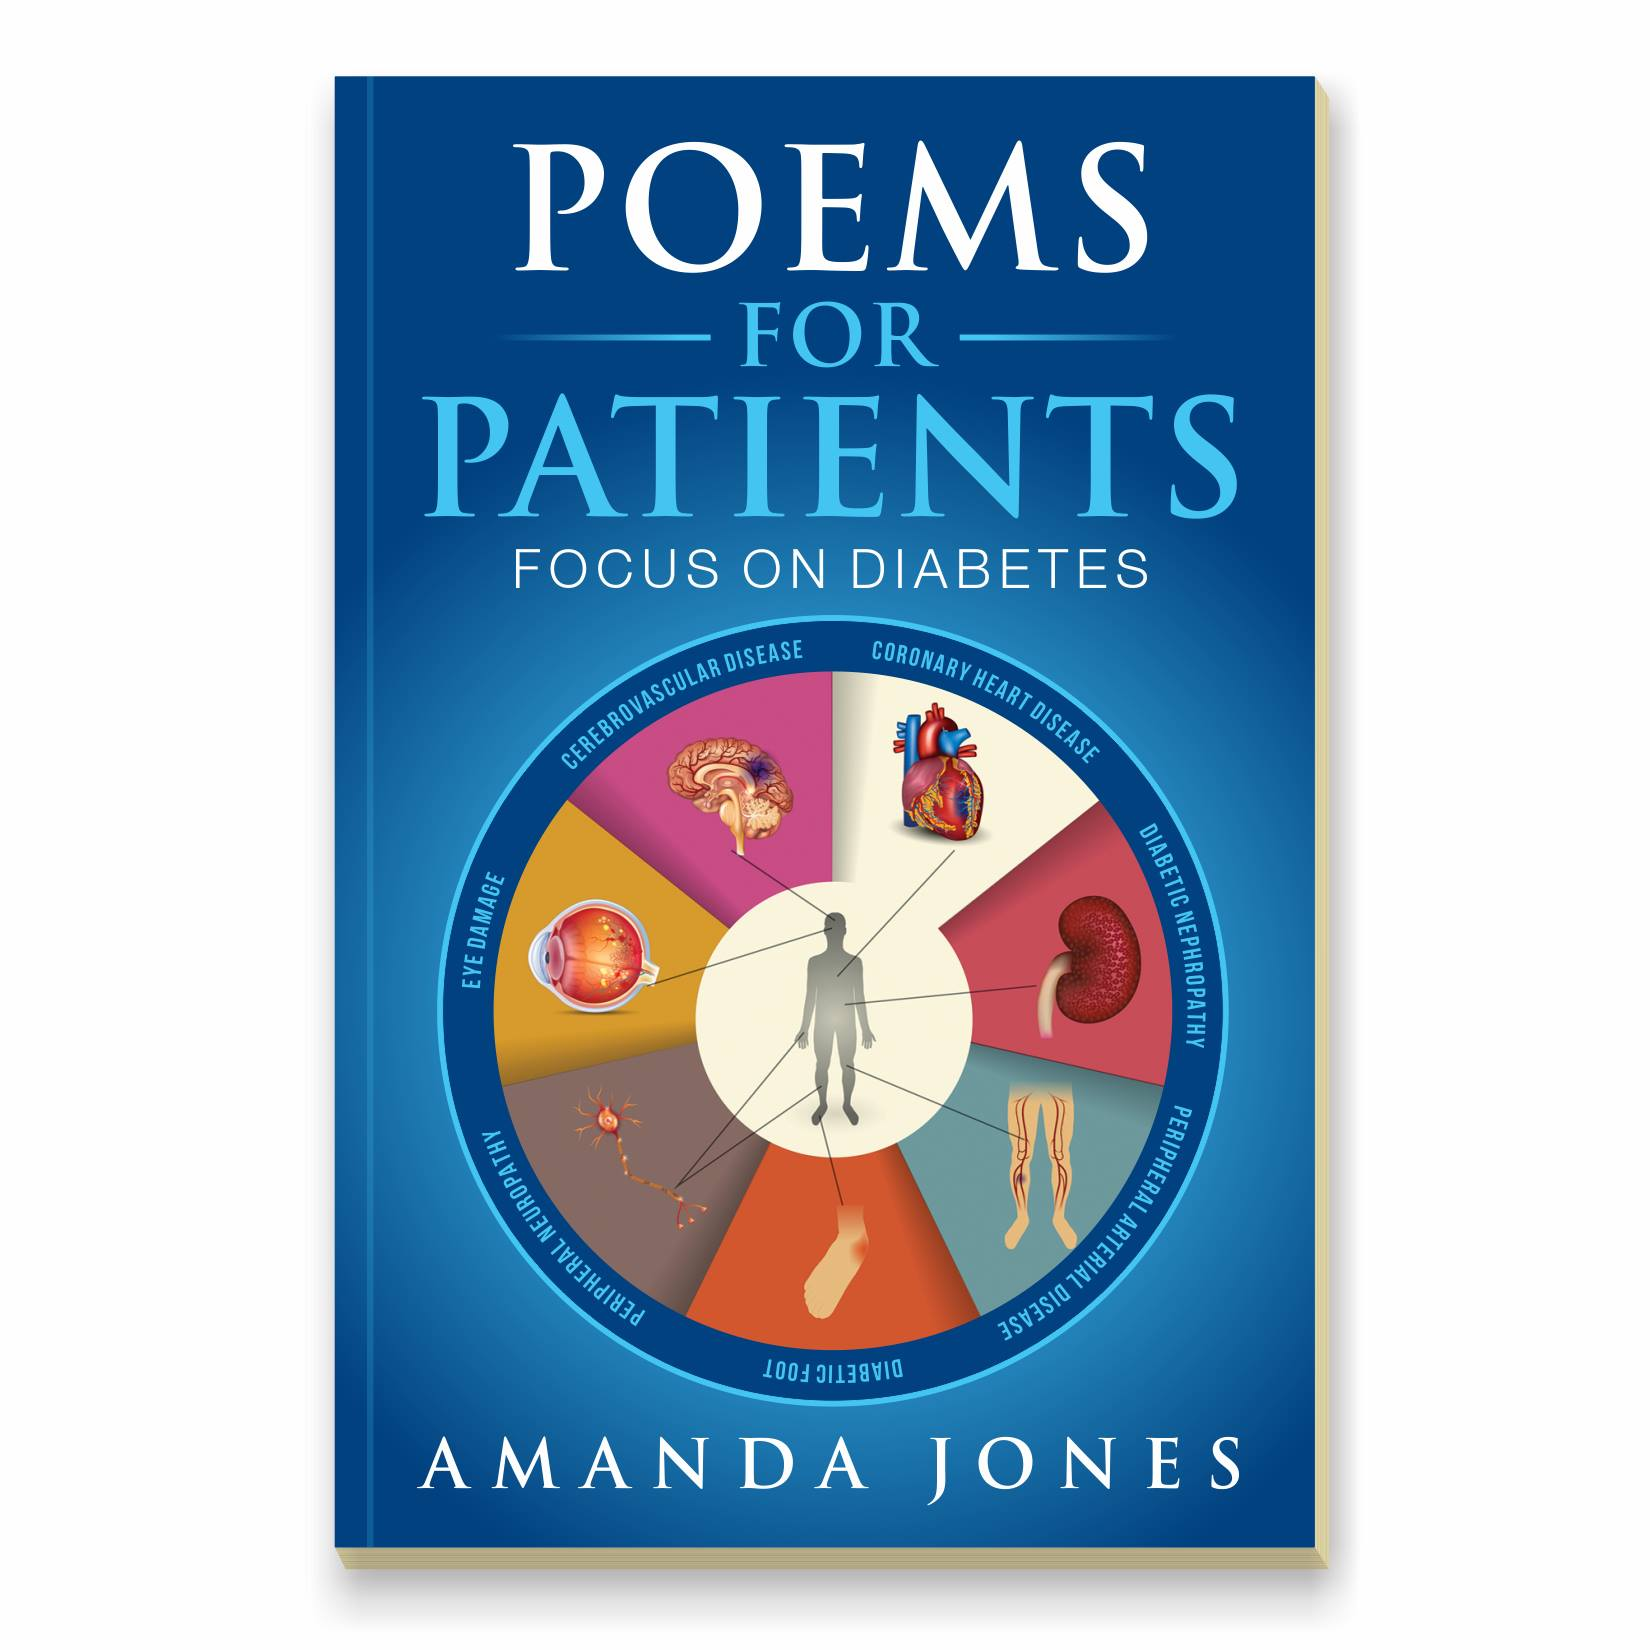 Poems For Patients- A focus on Diabetes